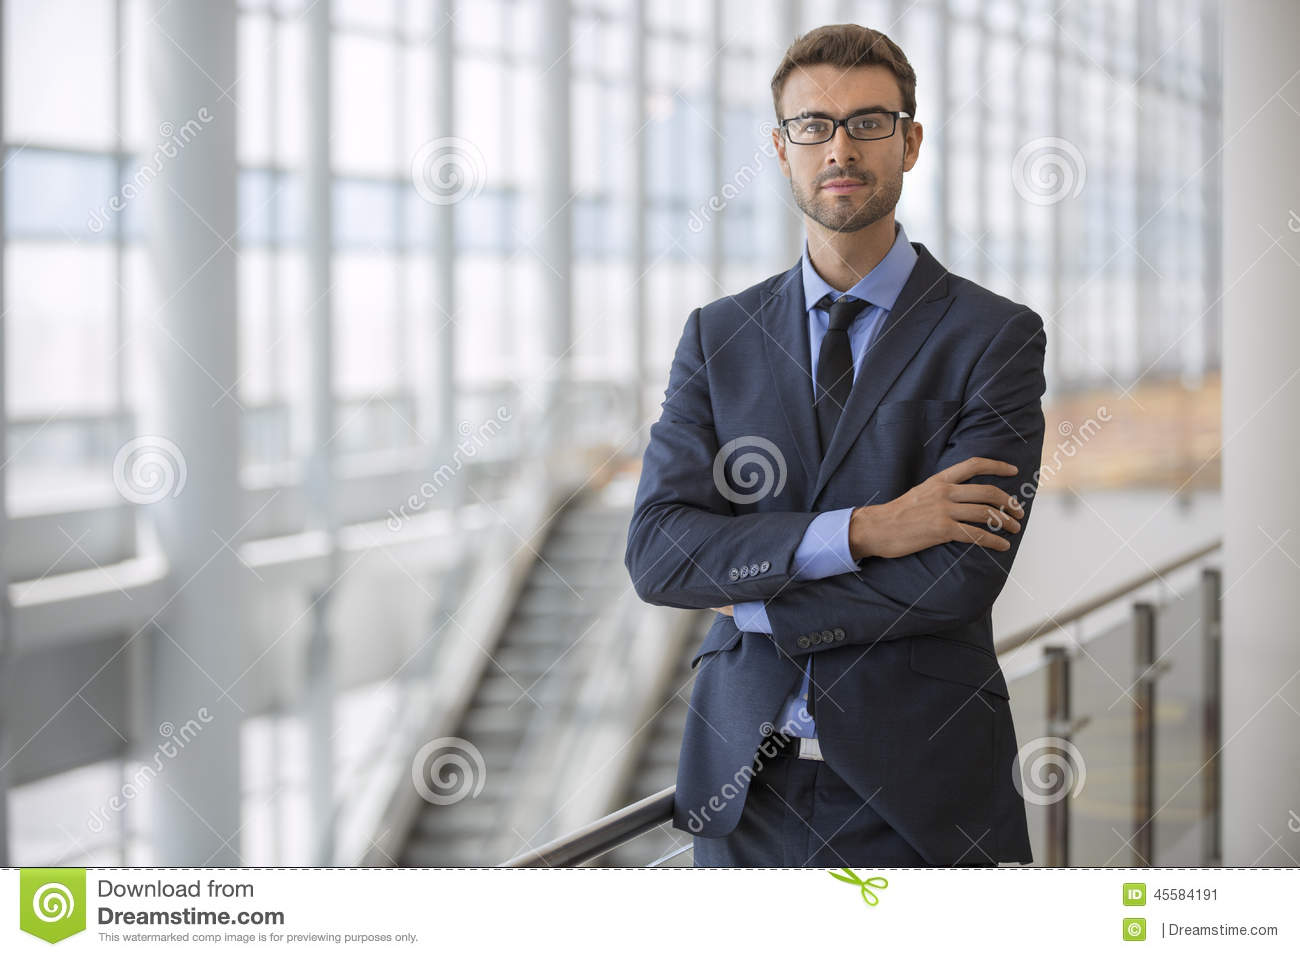 Confident Young Executive Arms Crossed Modern Architecture Escalator Office Building